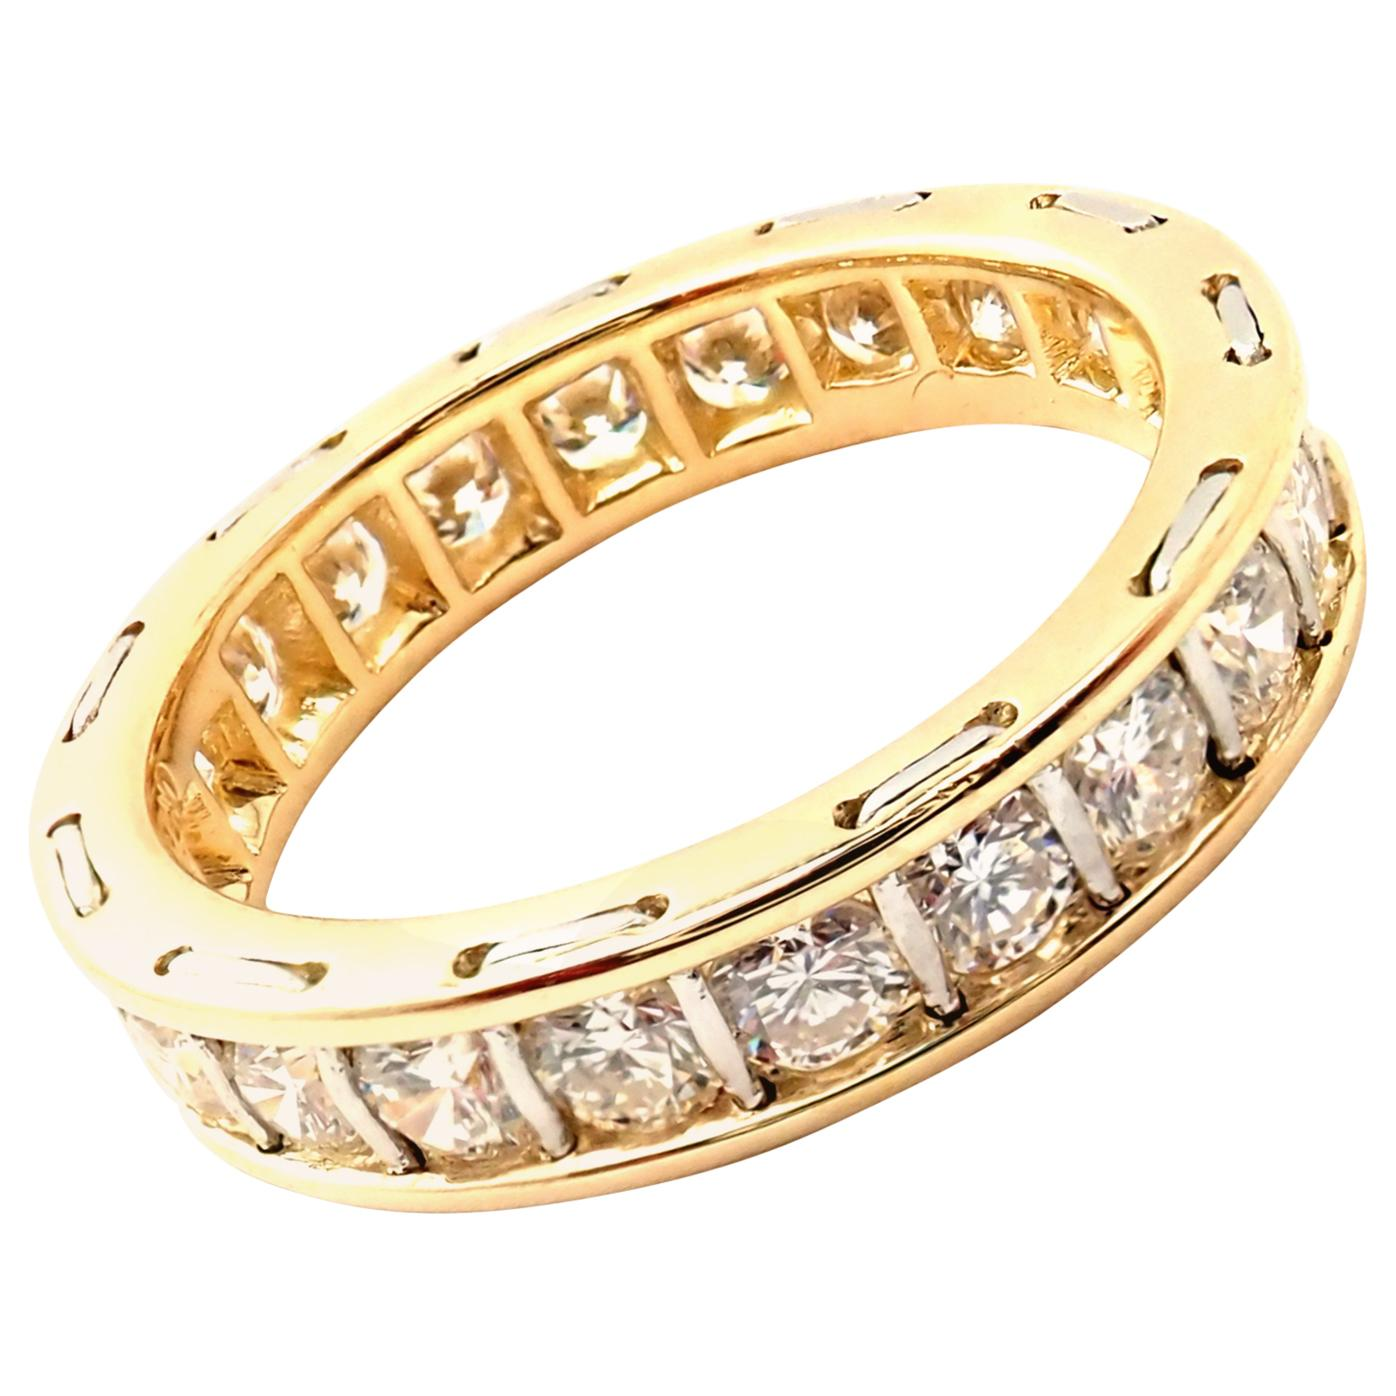 Vintage Cartier Diamond Eternity Band Yellow Gold Ring